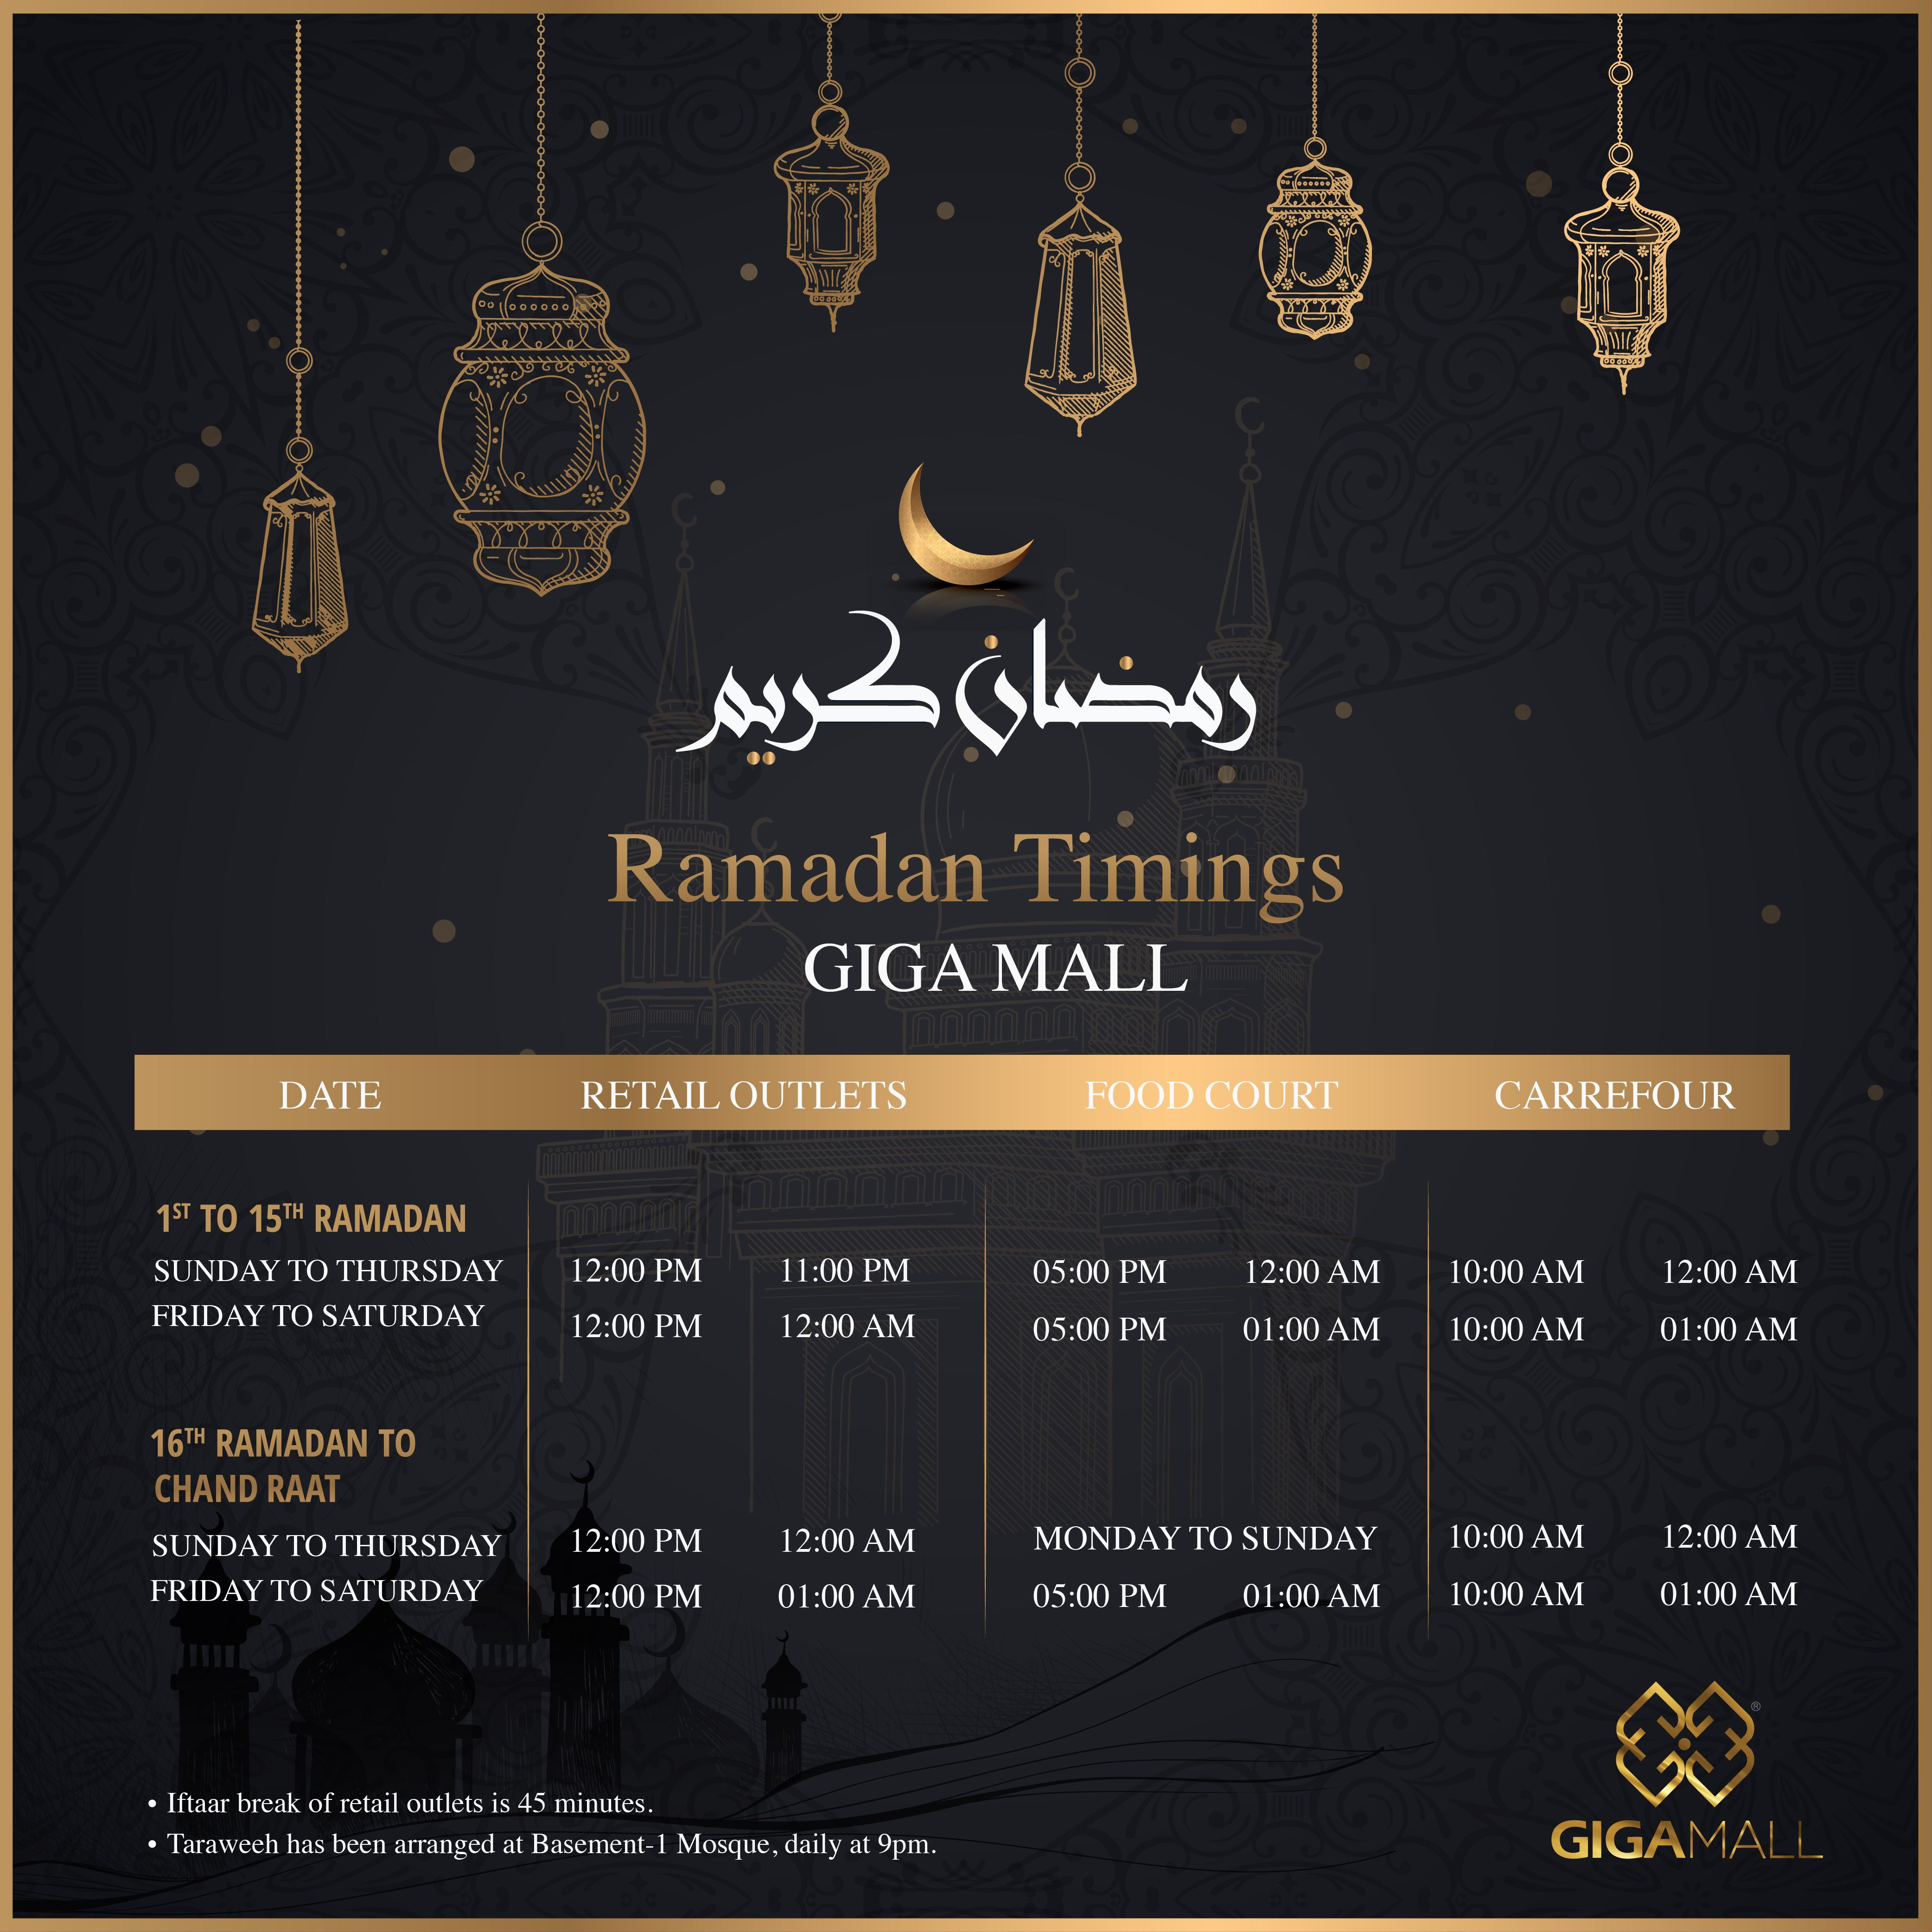 Ramadan Timing Of Giga Mall 45 Minutes Break Of Retail Outlets